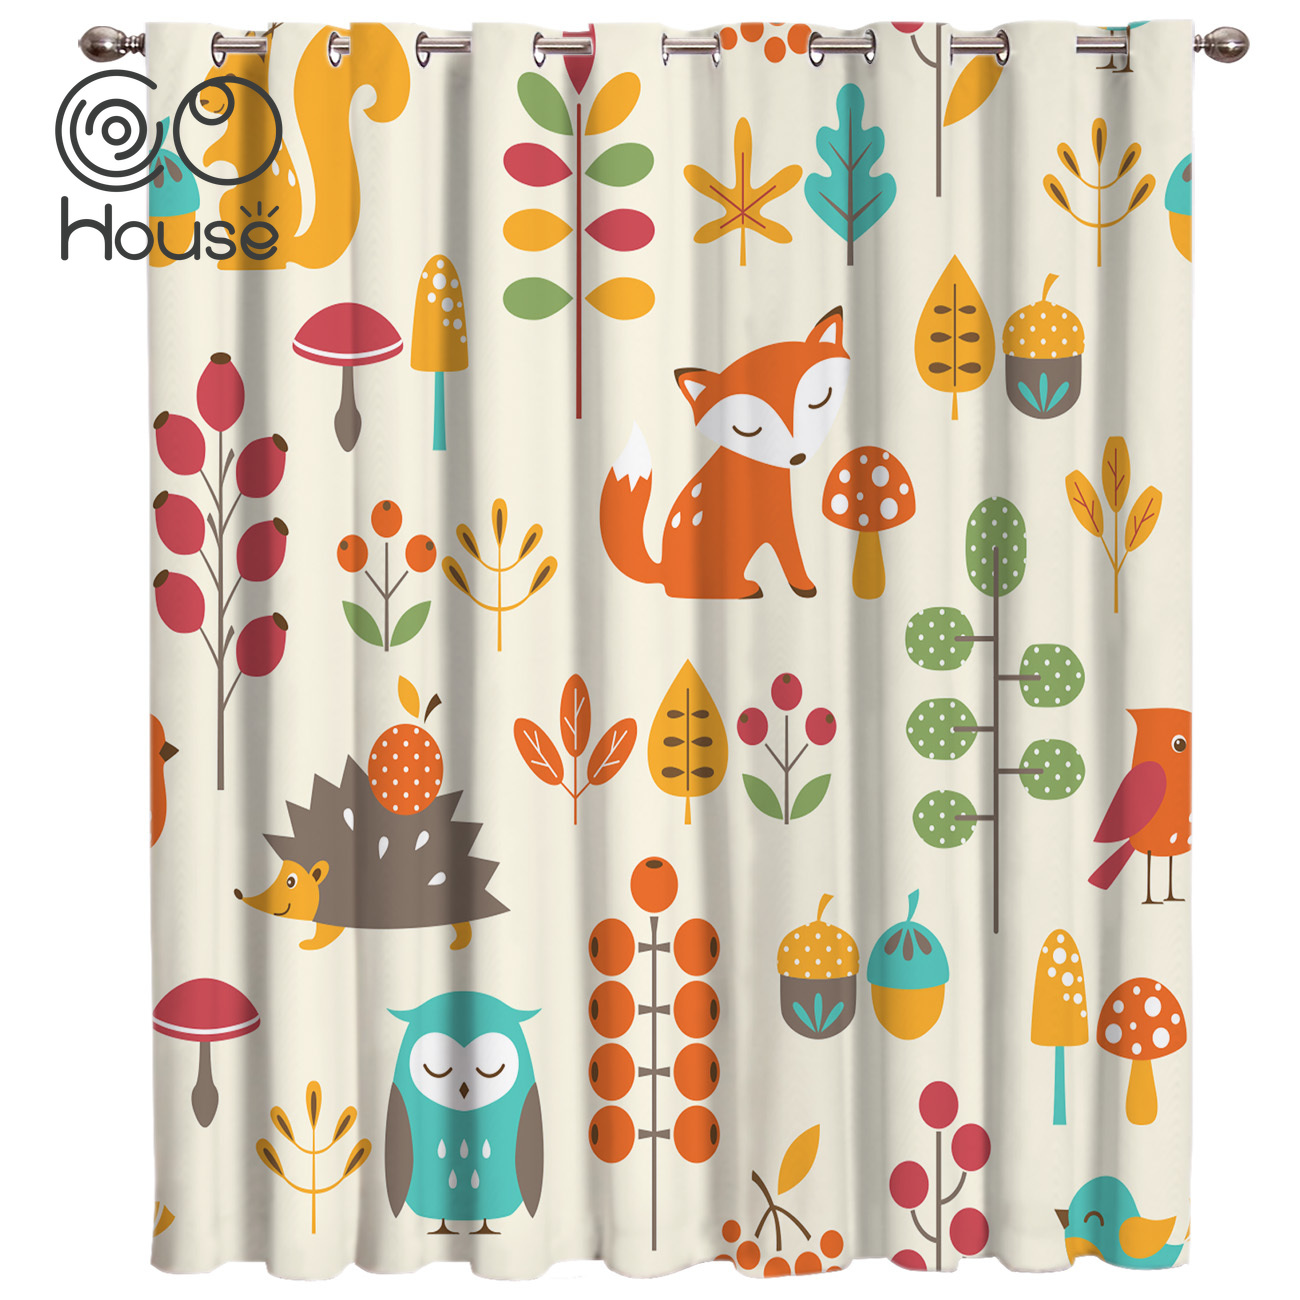 COCOHouse Autumn Fall Cute Children Hedgehog Fox Window Curtains Dark Living Room Outdoor Fabric Drapes Kids Curtain Panels With